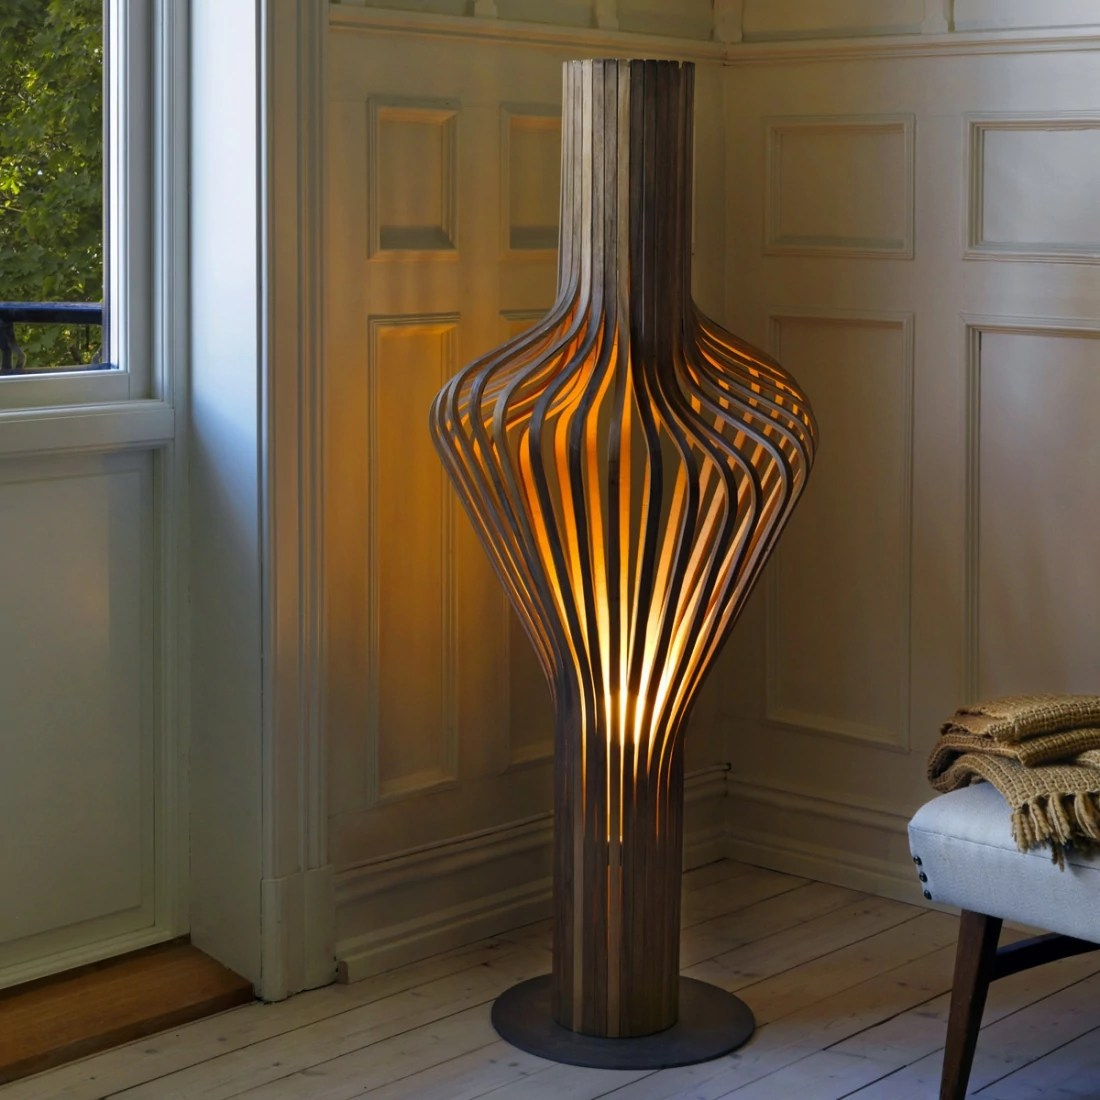 Starck Lampe Lampe Sur Pied Design Diva Floor Northern Lighting